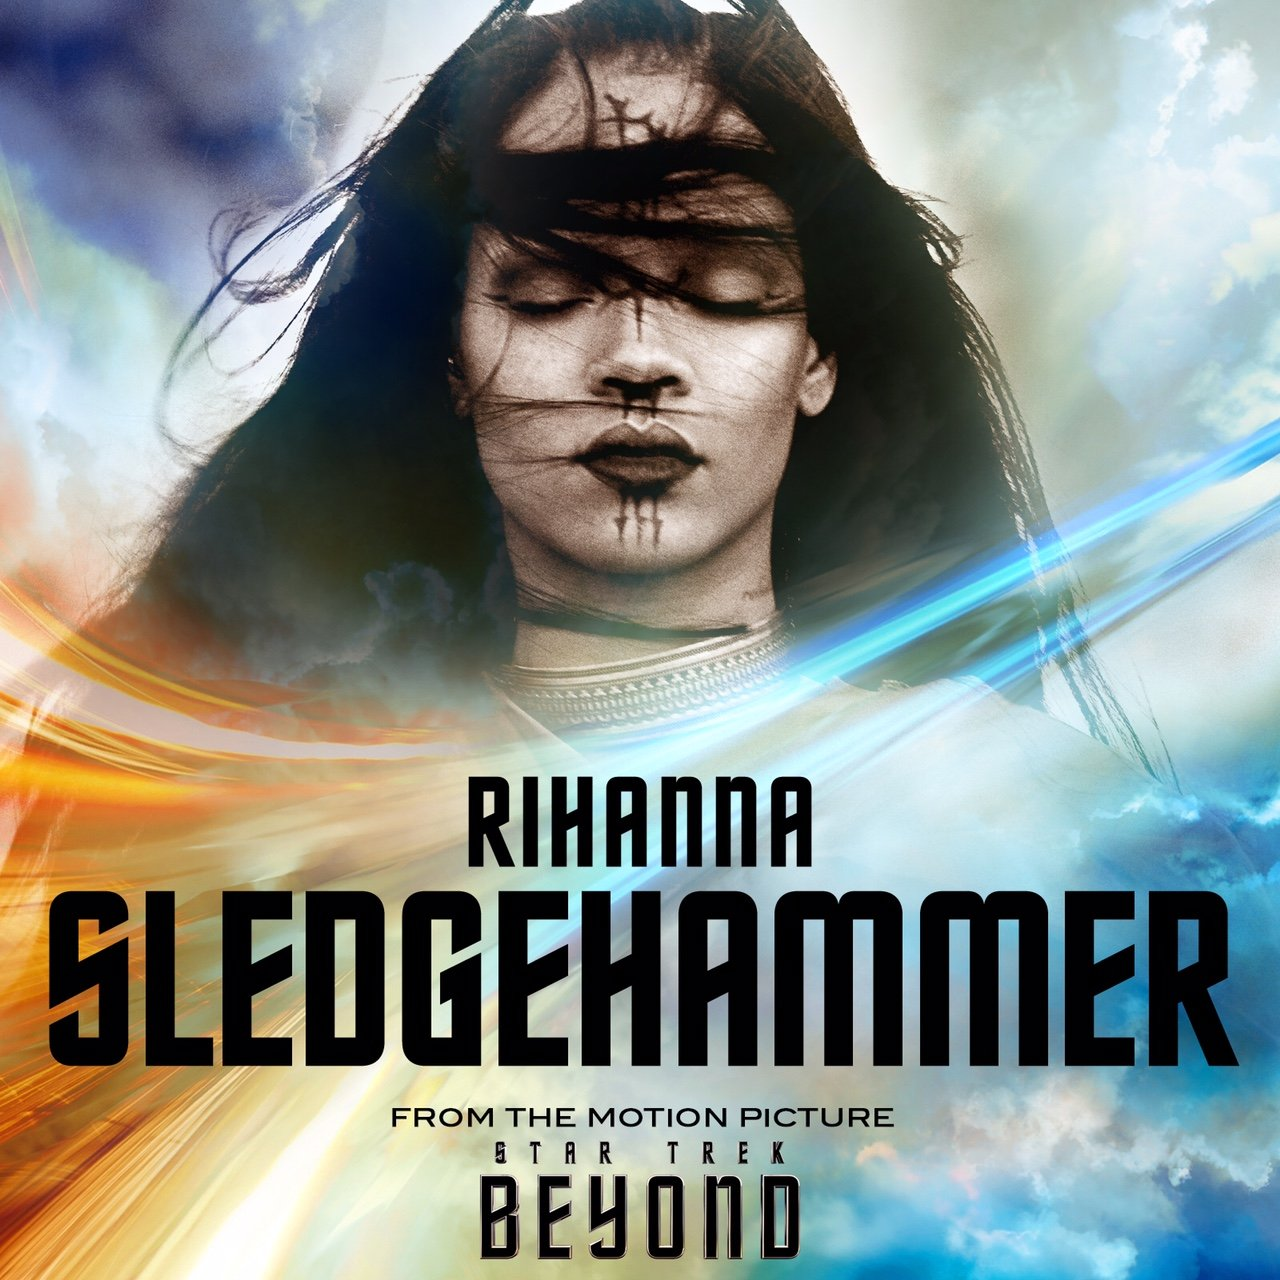 #Sledgehammer out now from @startrekmovie!  TIDAL --> https://t.co/vtuyr9GxWV Download --> https://t.co/iFMQkXwmCG https://t.co/EoUsKJkSX1